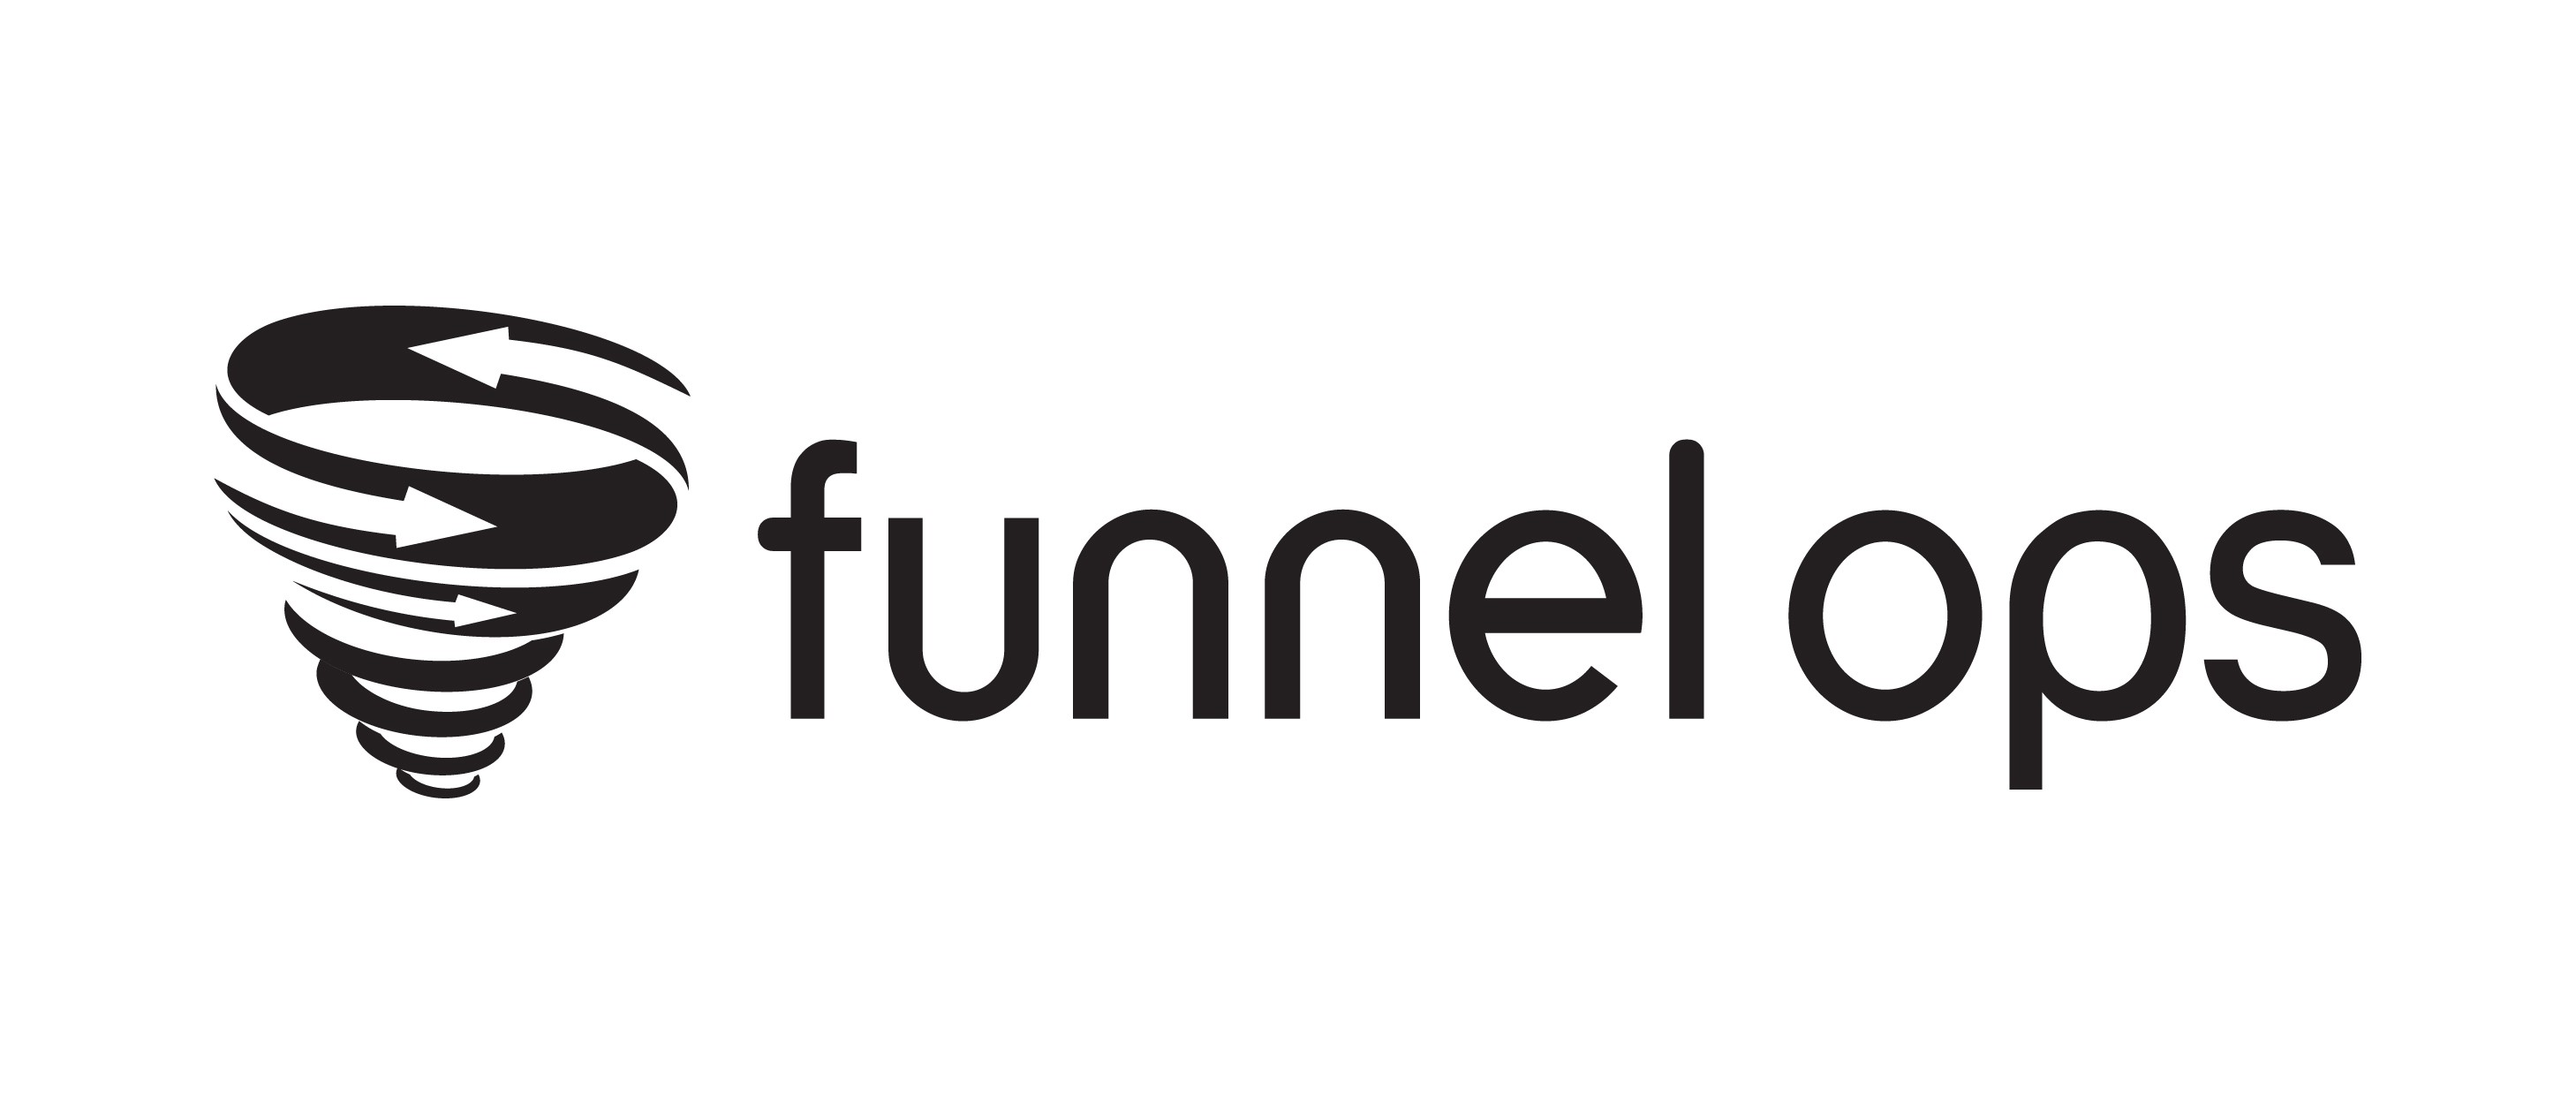 Create a professional and clean logo for web analytics agency Funnel Ops